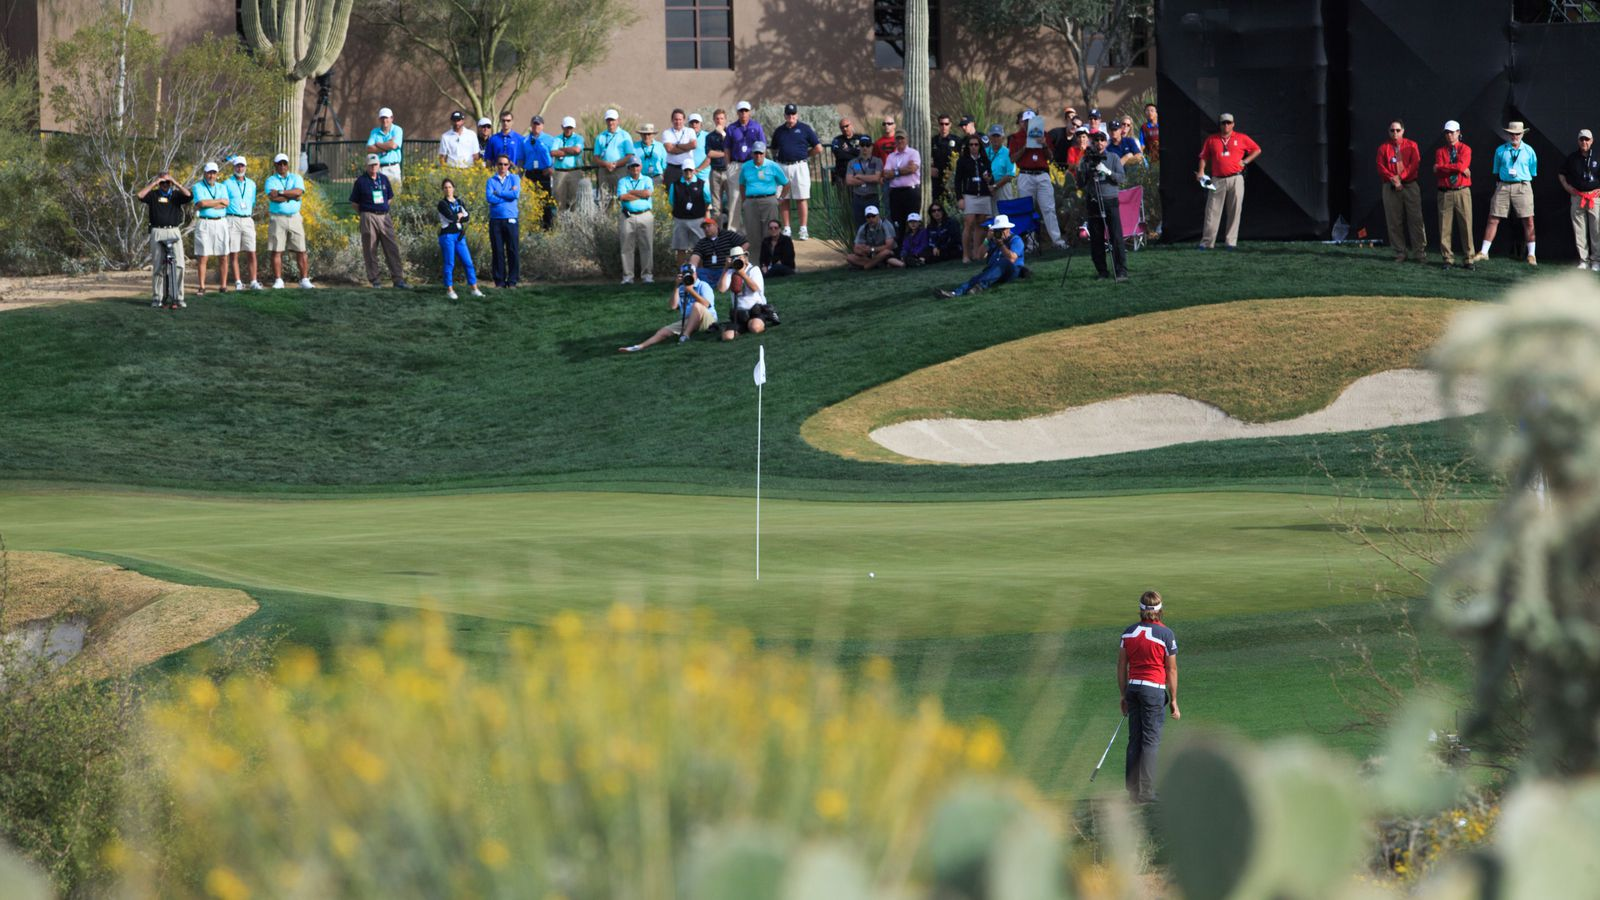 2014 Wgc Accenture Match Play Streaming How To Watch